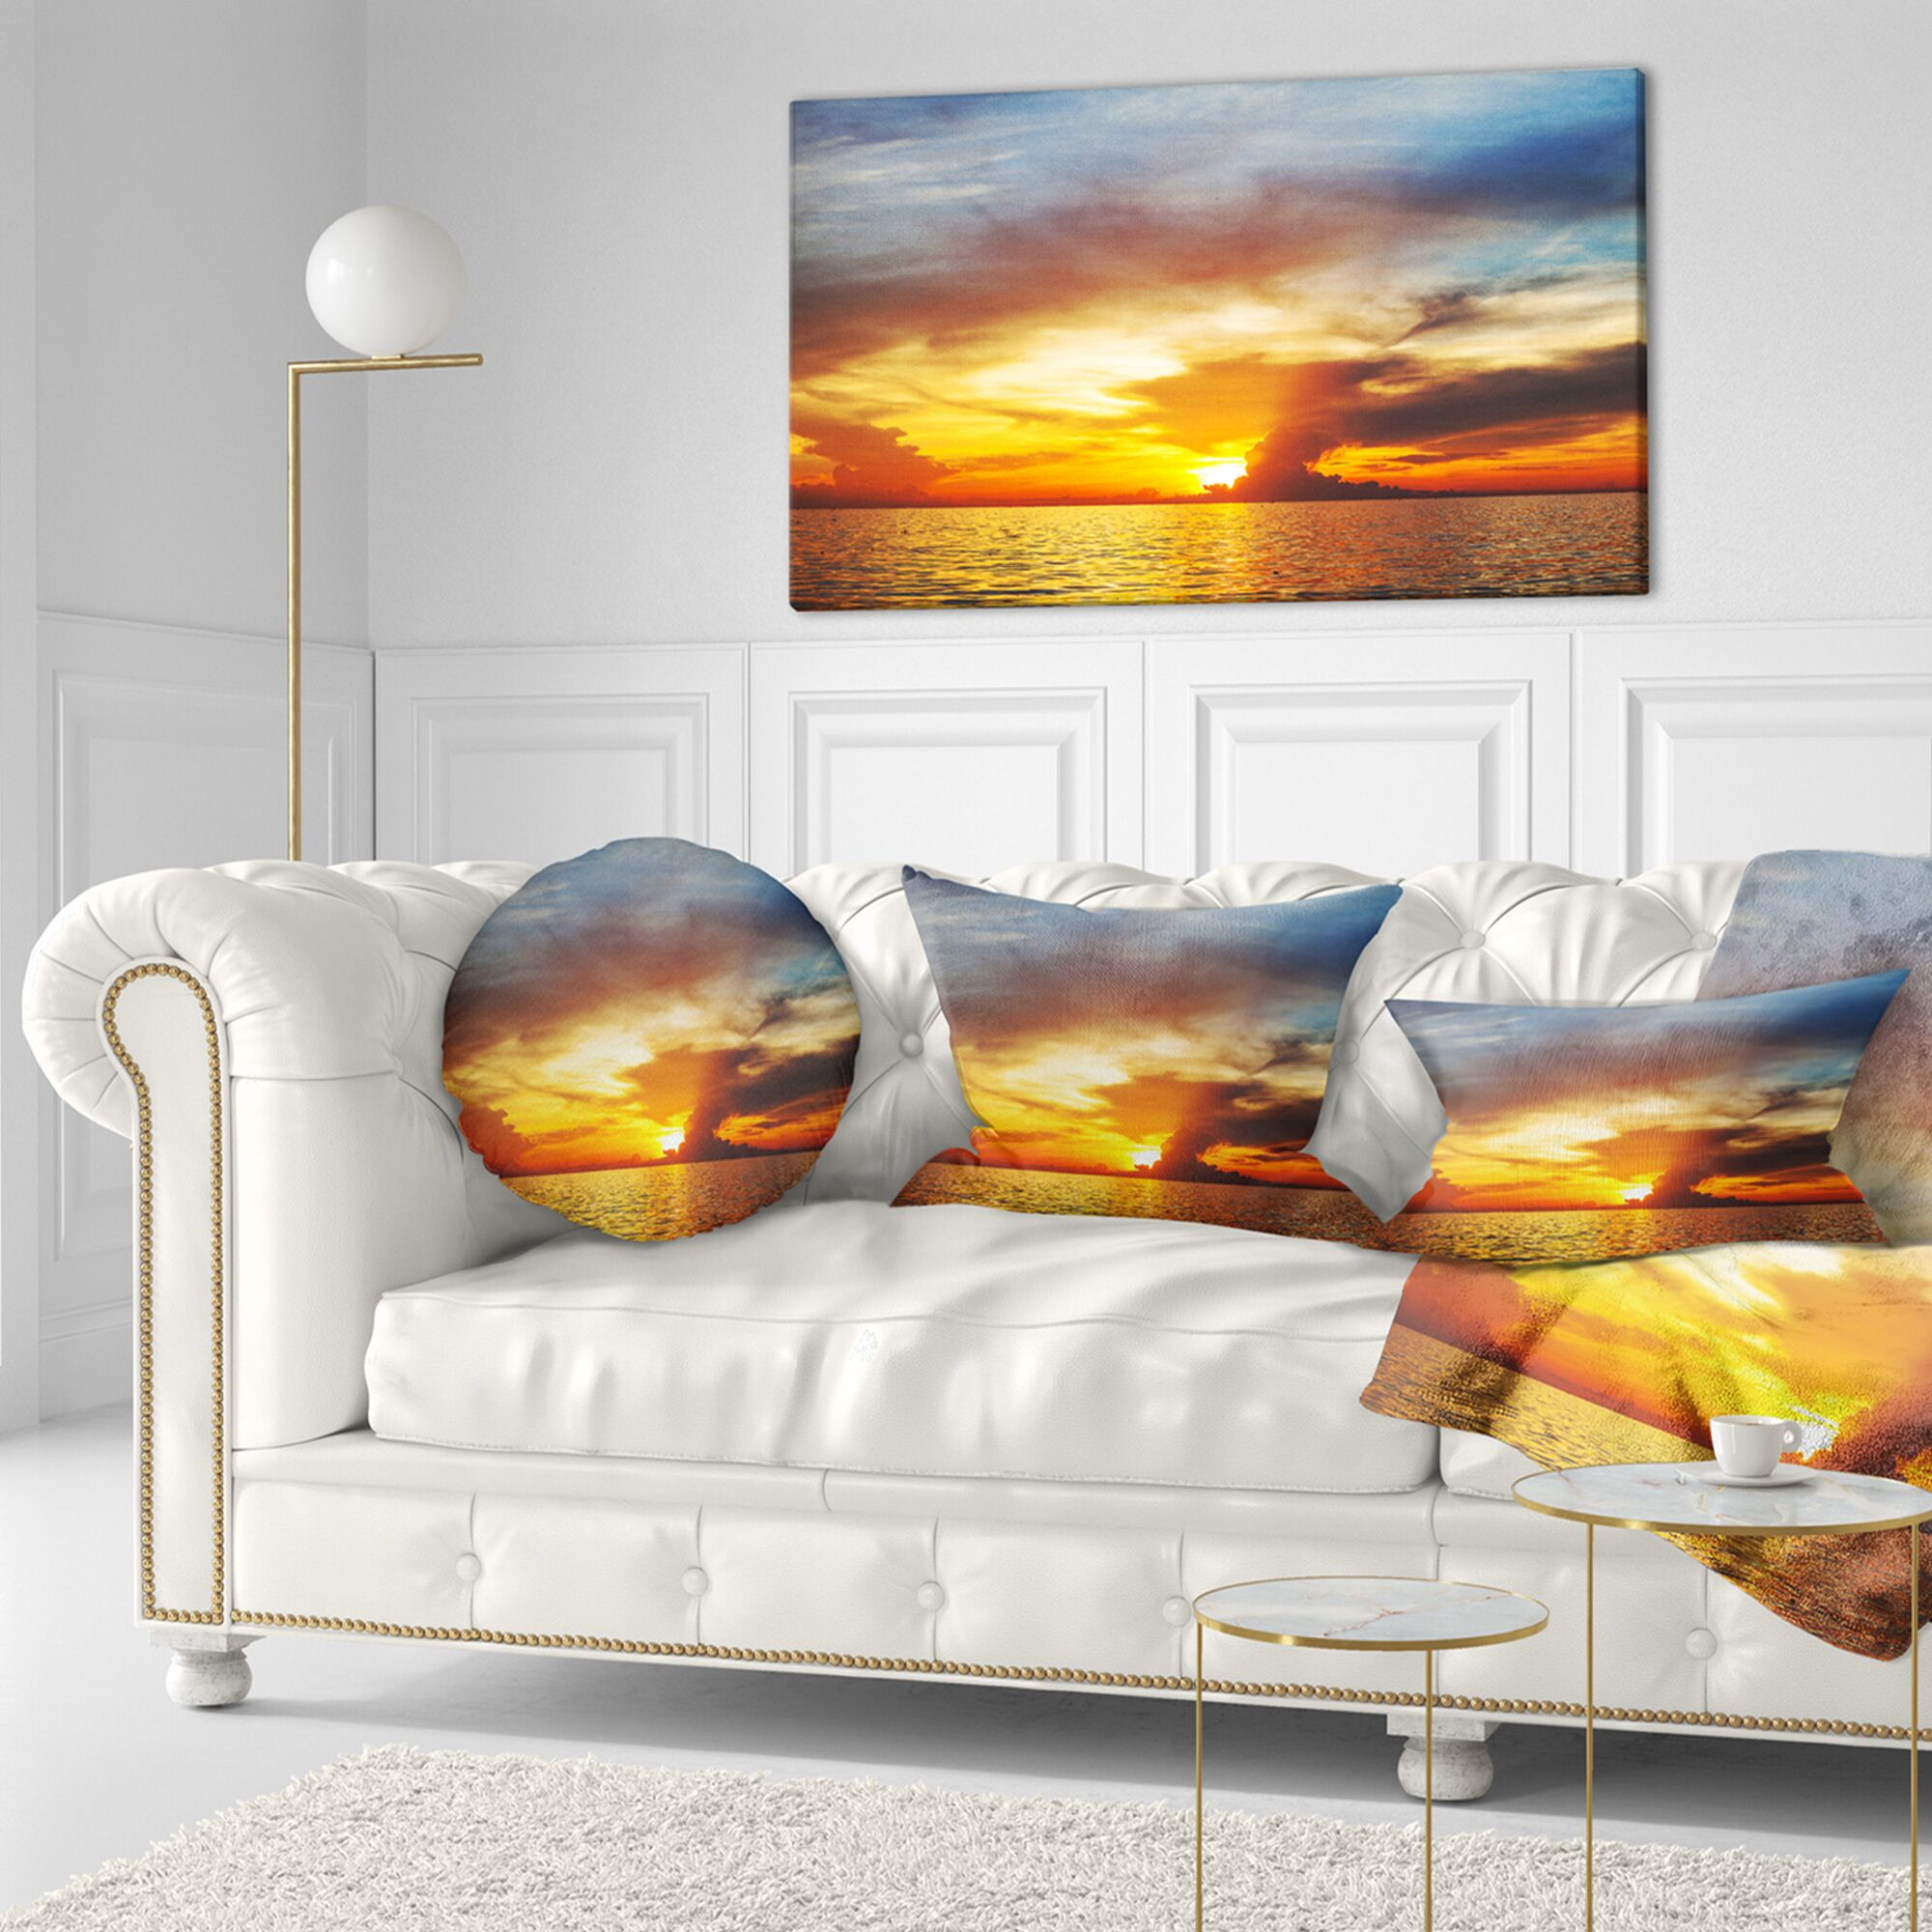 Seashore Fiery Sky at Sunset over Sea Lumbar Pillow